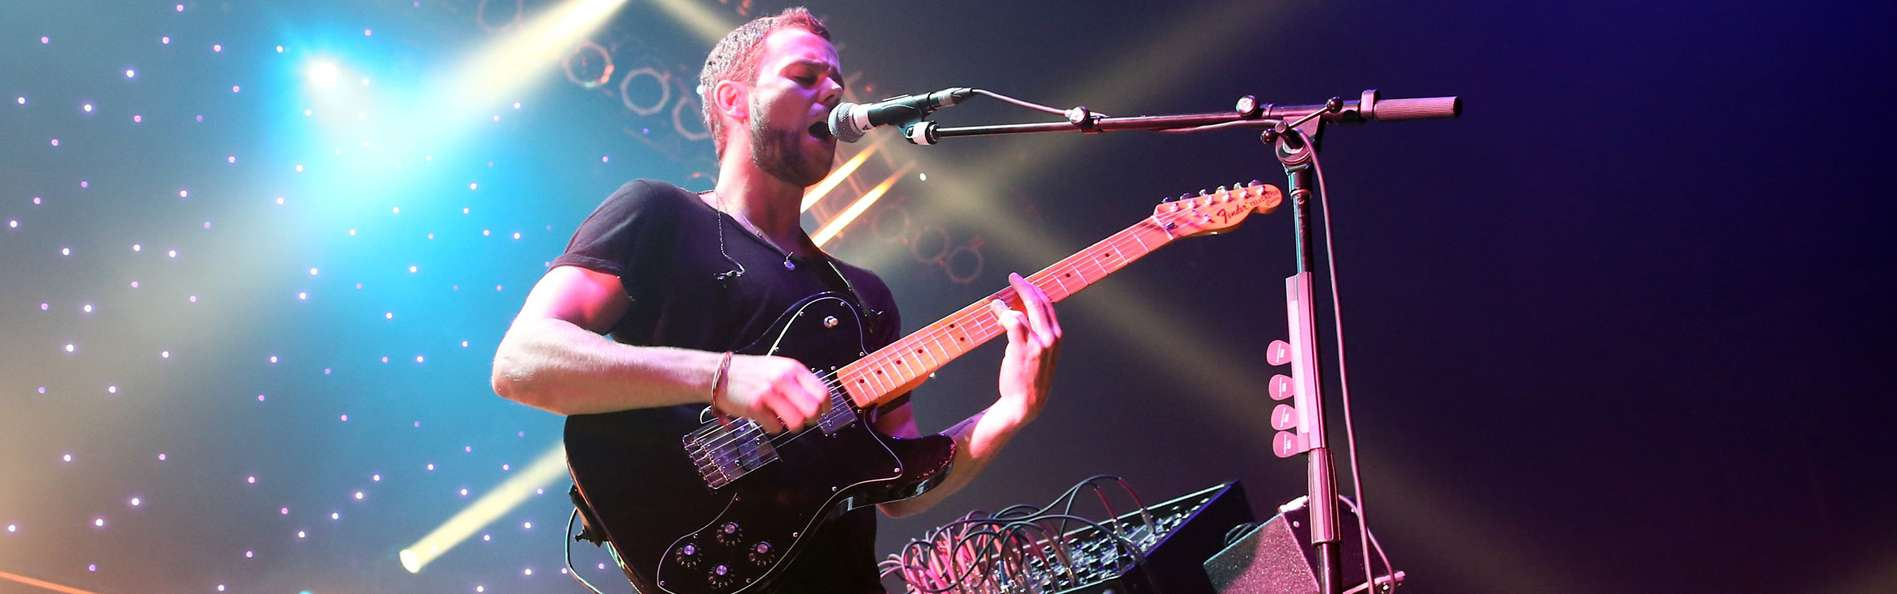 m83 Foto: Getty Images